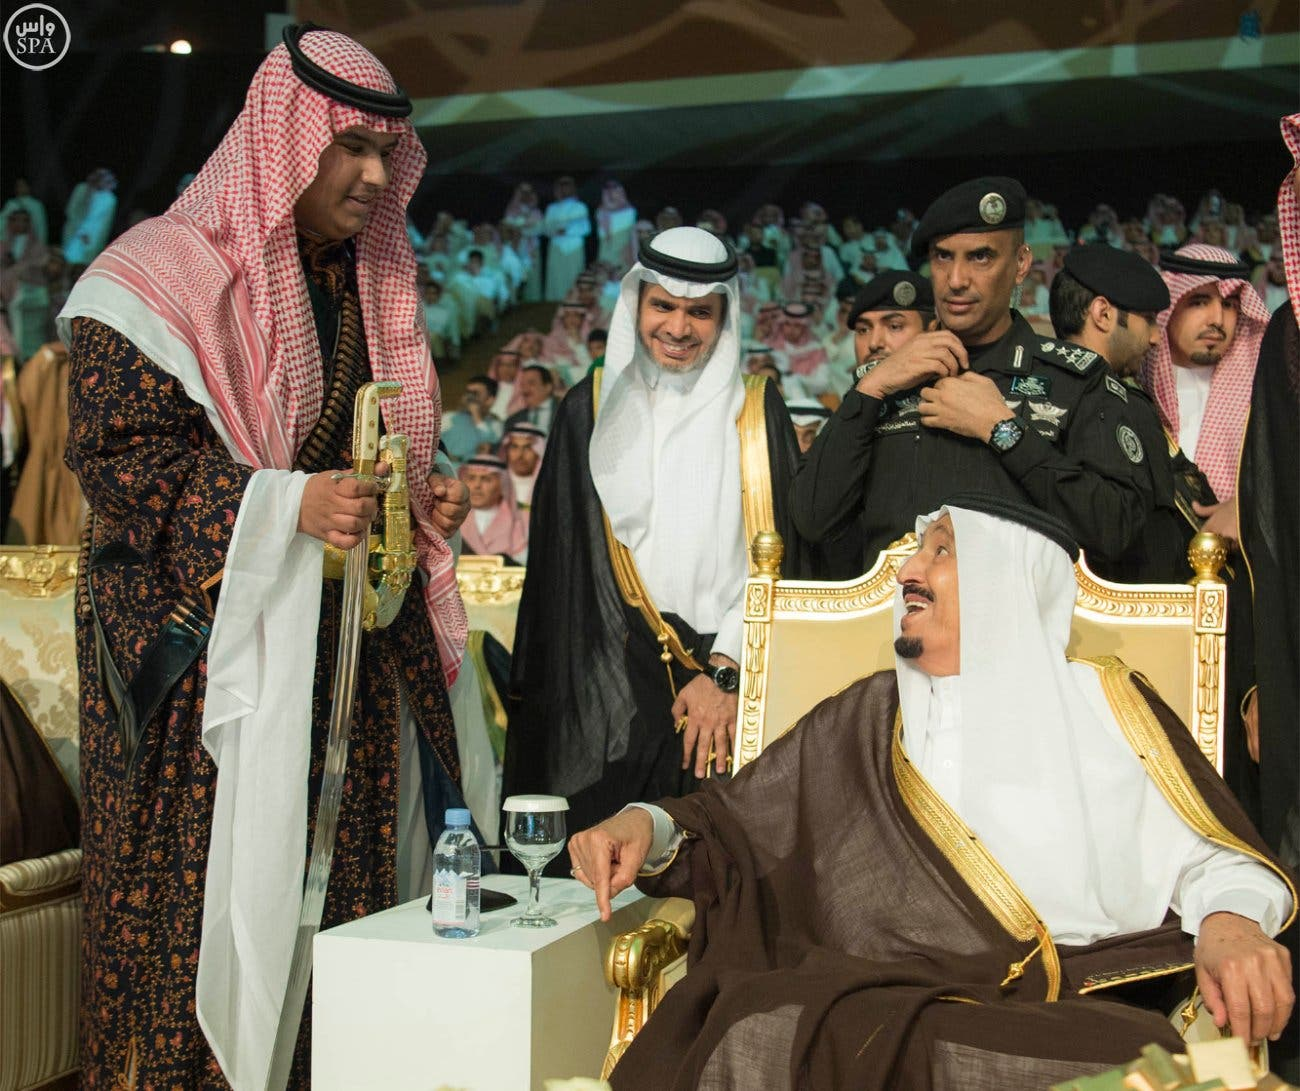 Saudi King Salman could not hold back emotions as he attended the graduation of his youngest son Prince Rakan. (Photo courtesy: Bandar al-Jaloud)